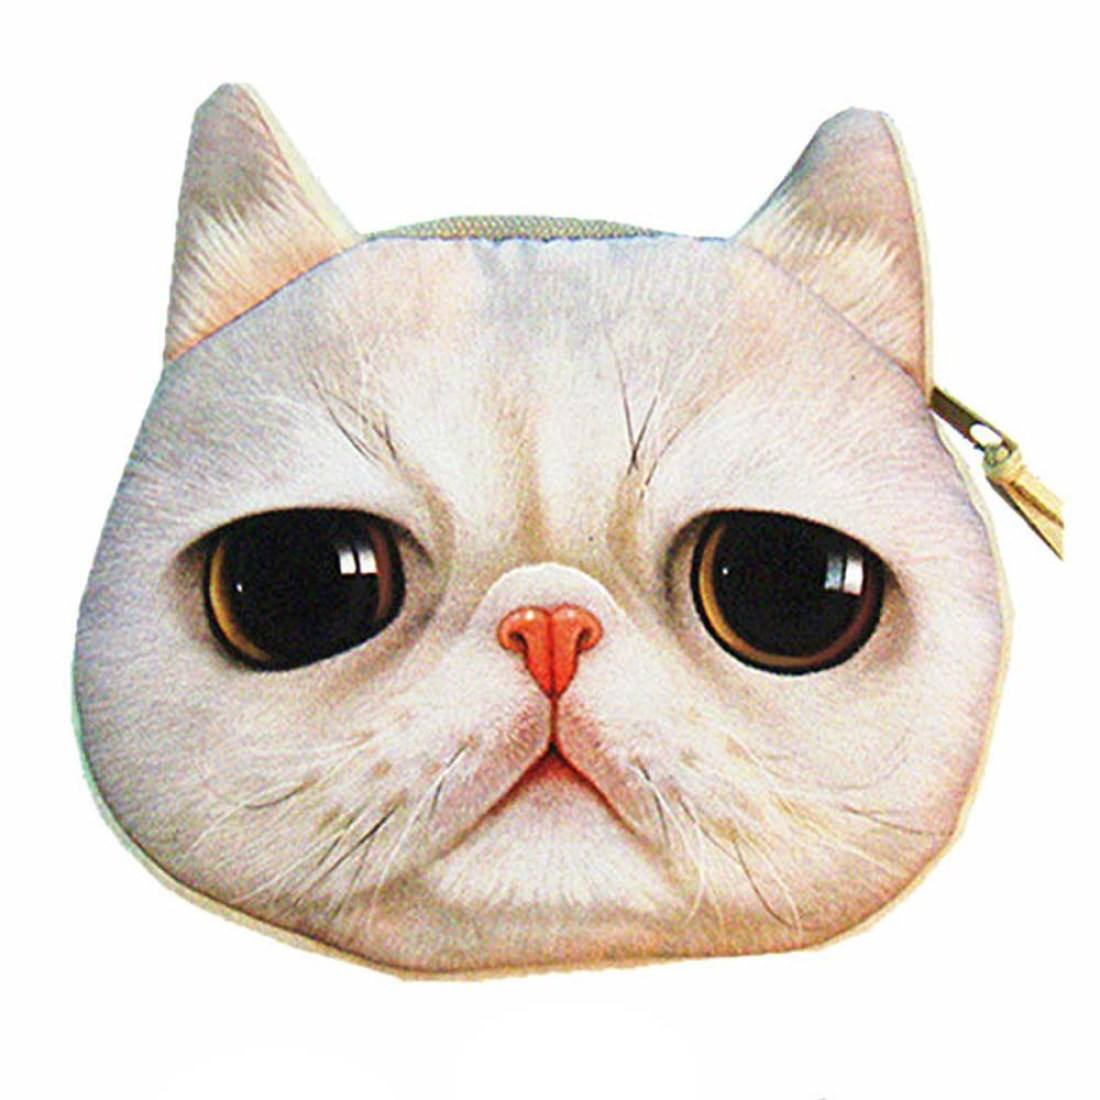 Grey Tabby Kitty Cat Face Shaped Soft Fabric Coin Purse Make Up Bag